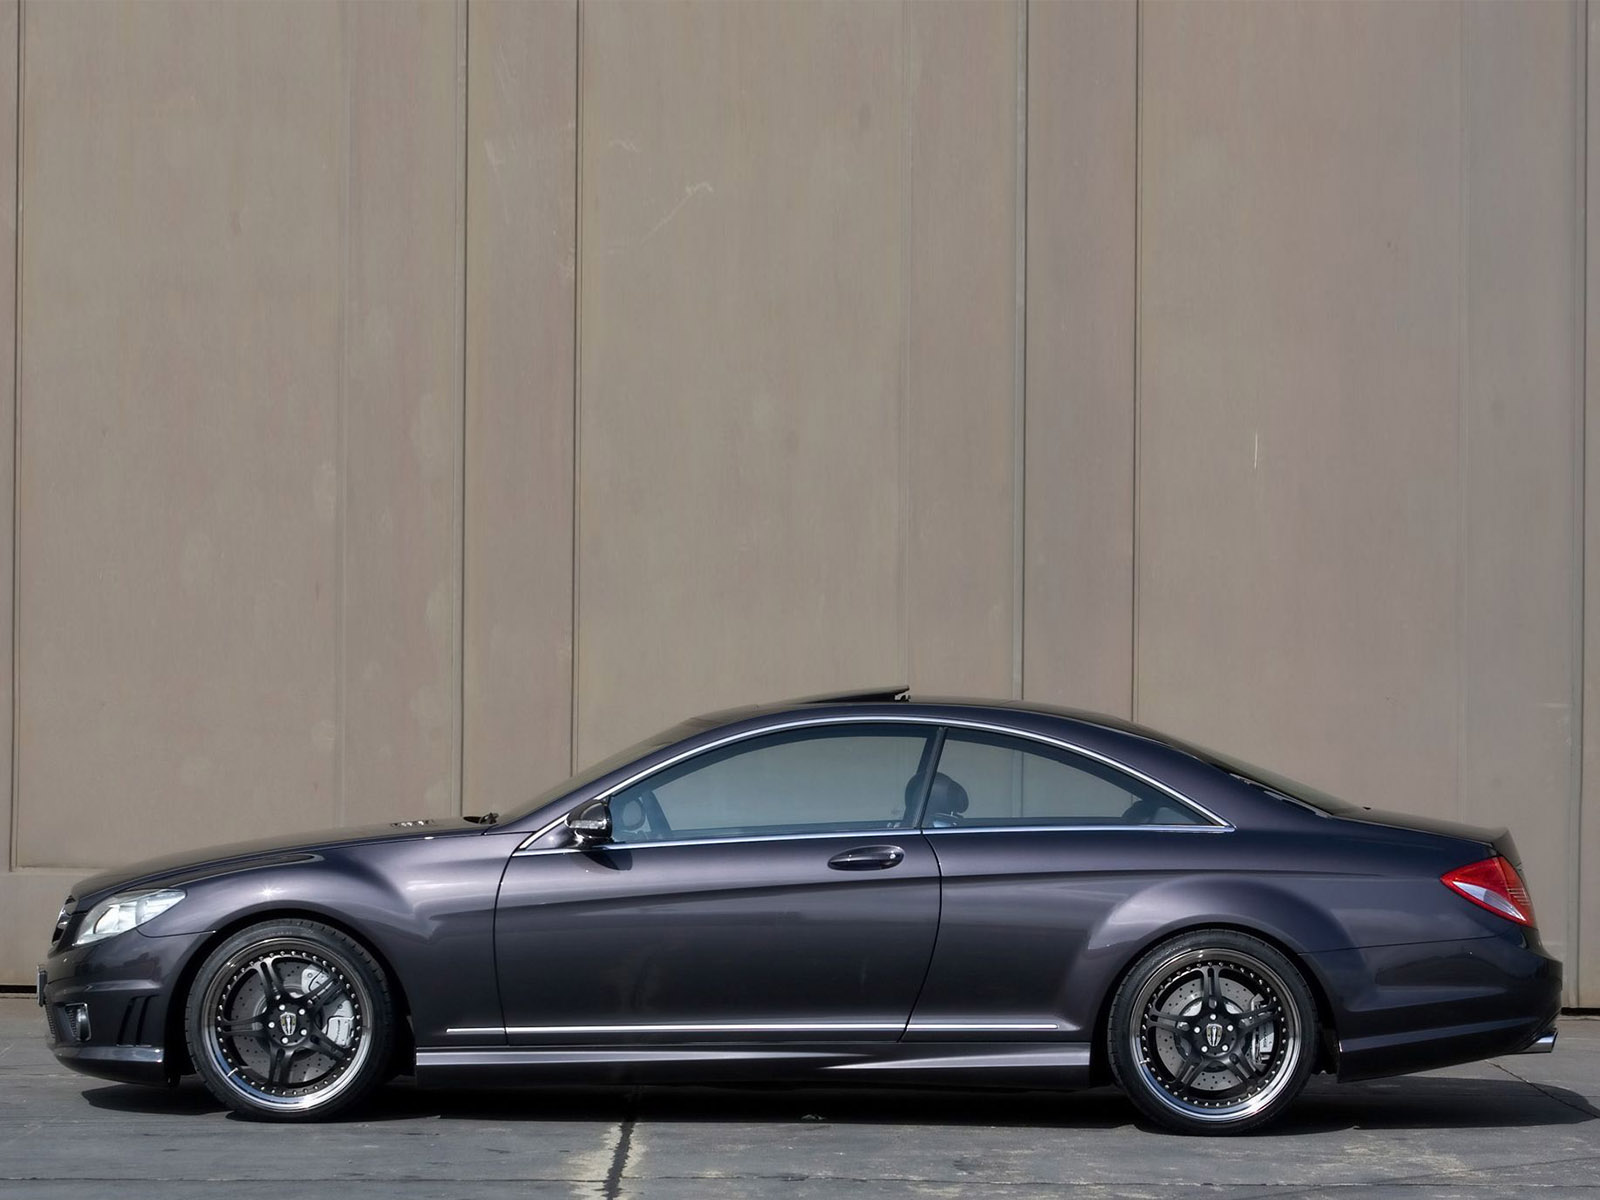 Kicherer_Mercedes CL60 Coupe 2009